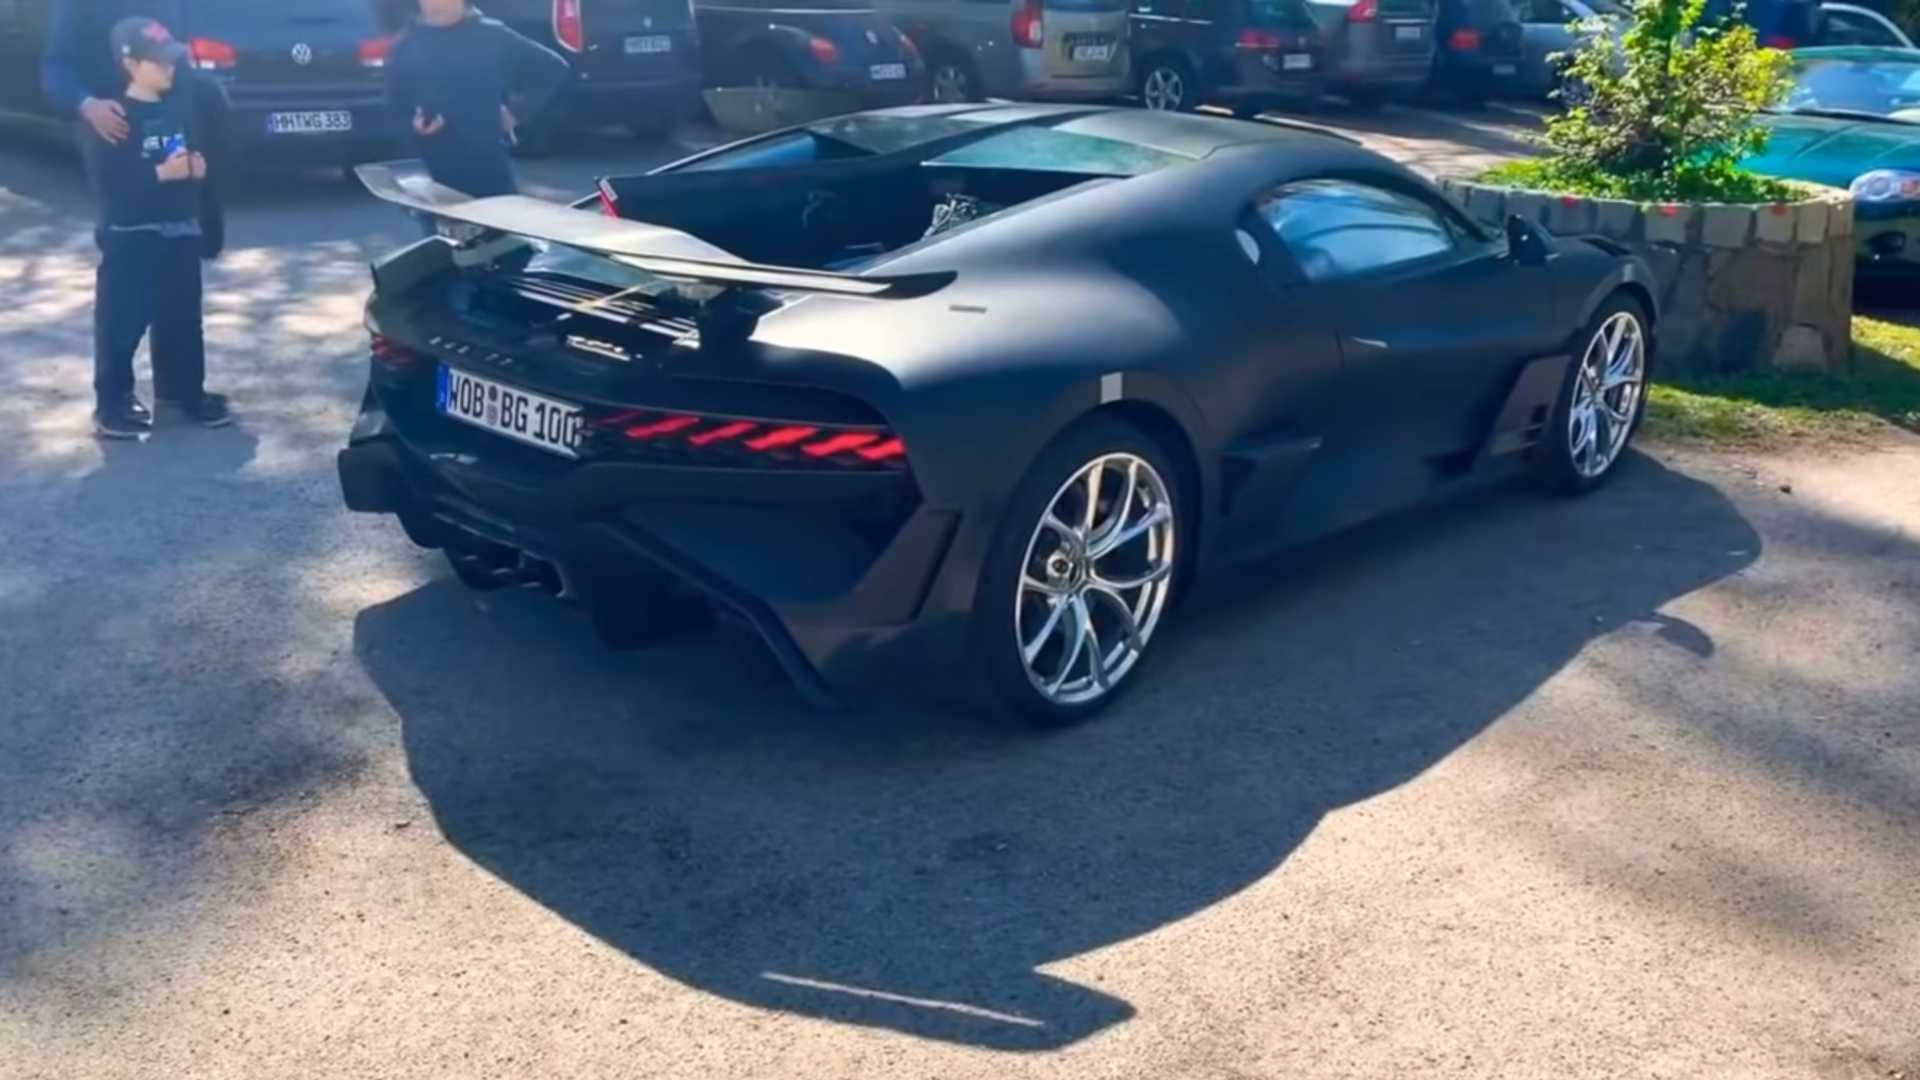 Stealthy Bugatti Divo Looks Like What Darth Vader Would Drive